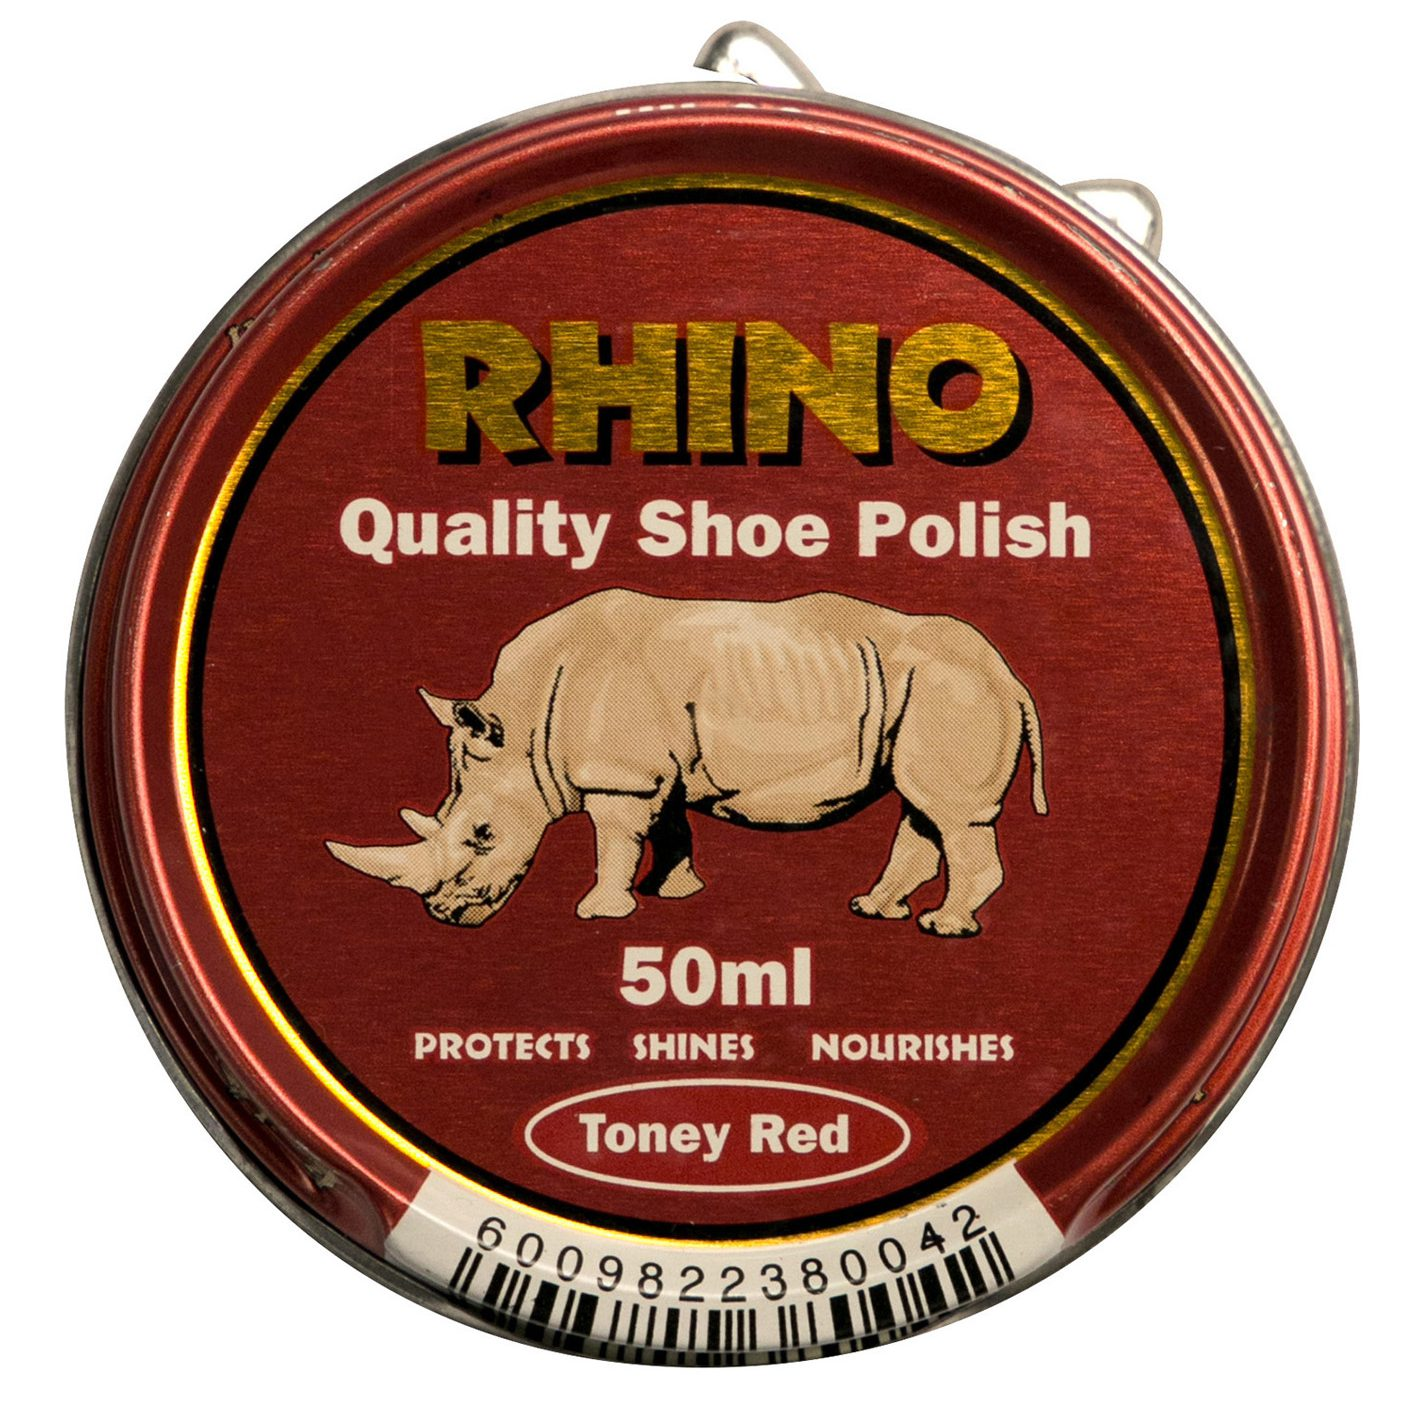 Rhino Shoe Polish Toney Red 50ml